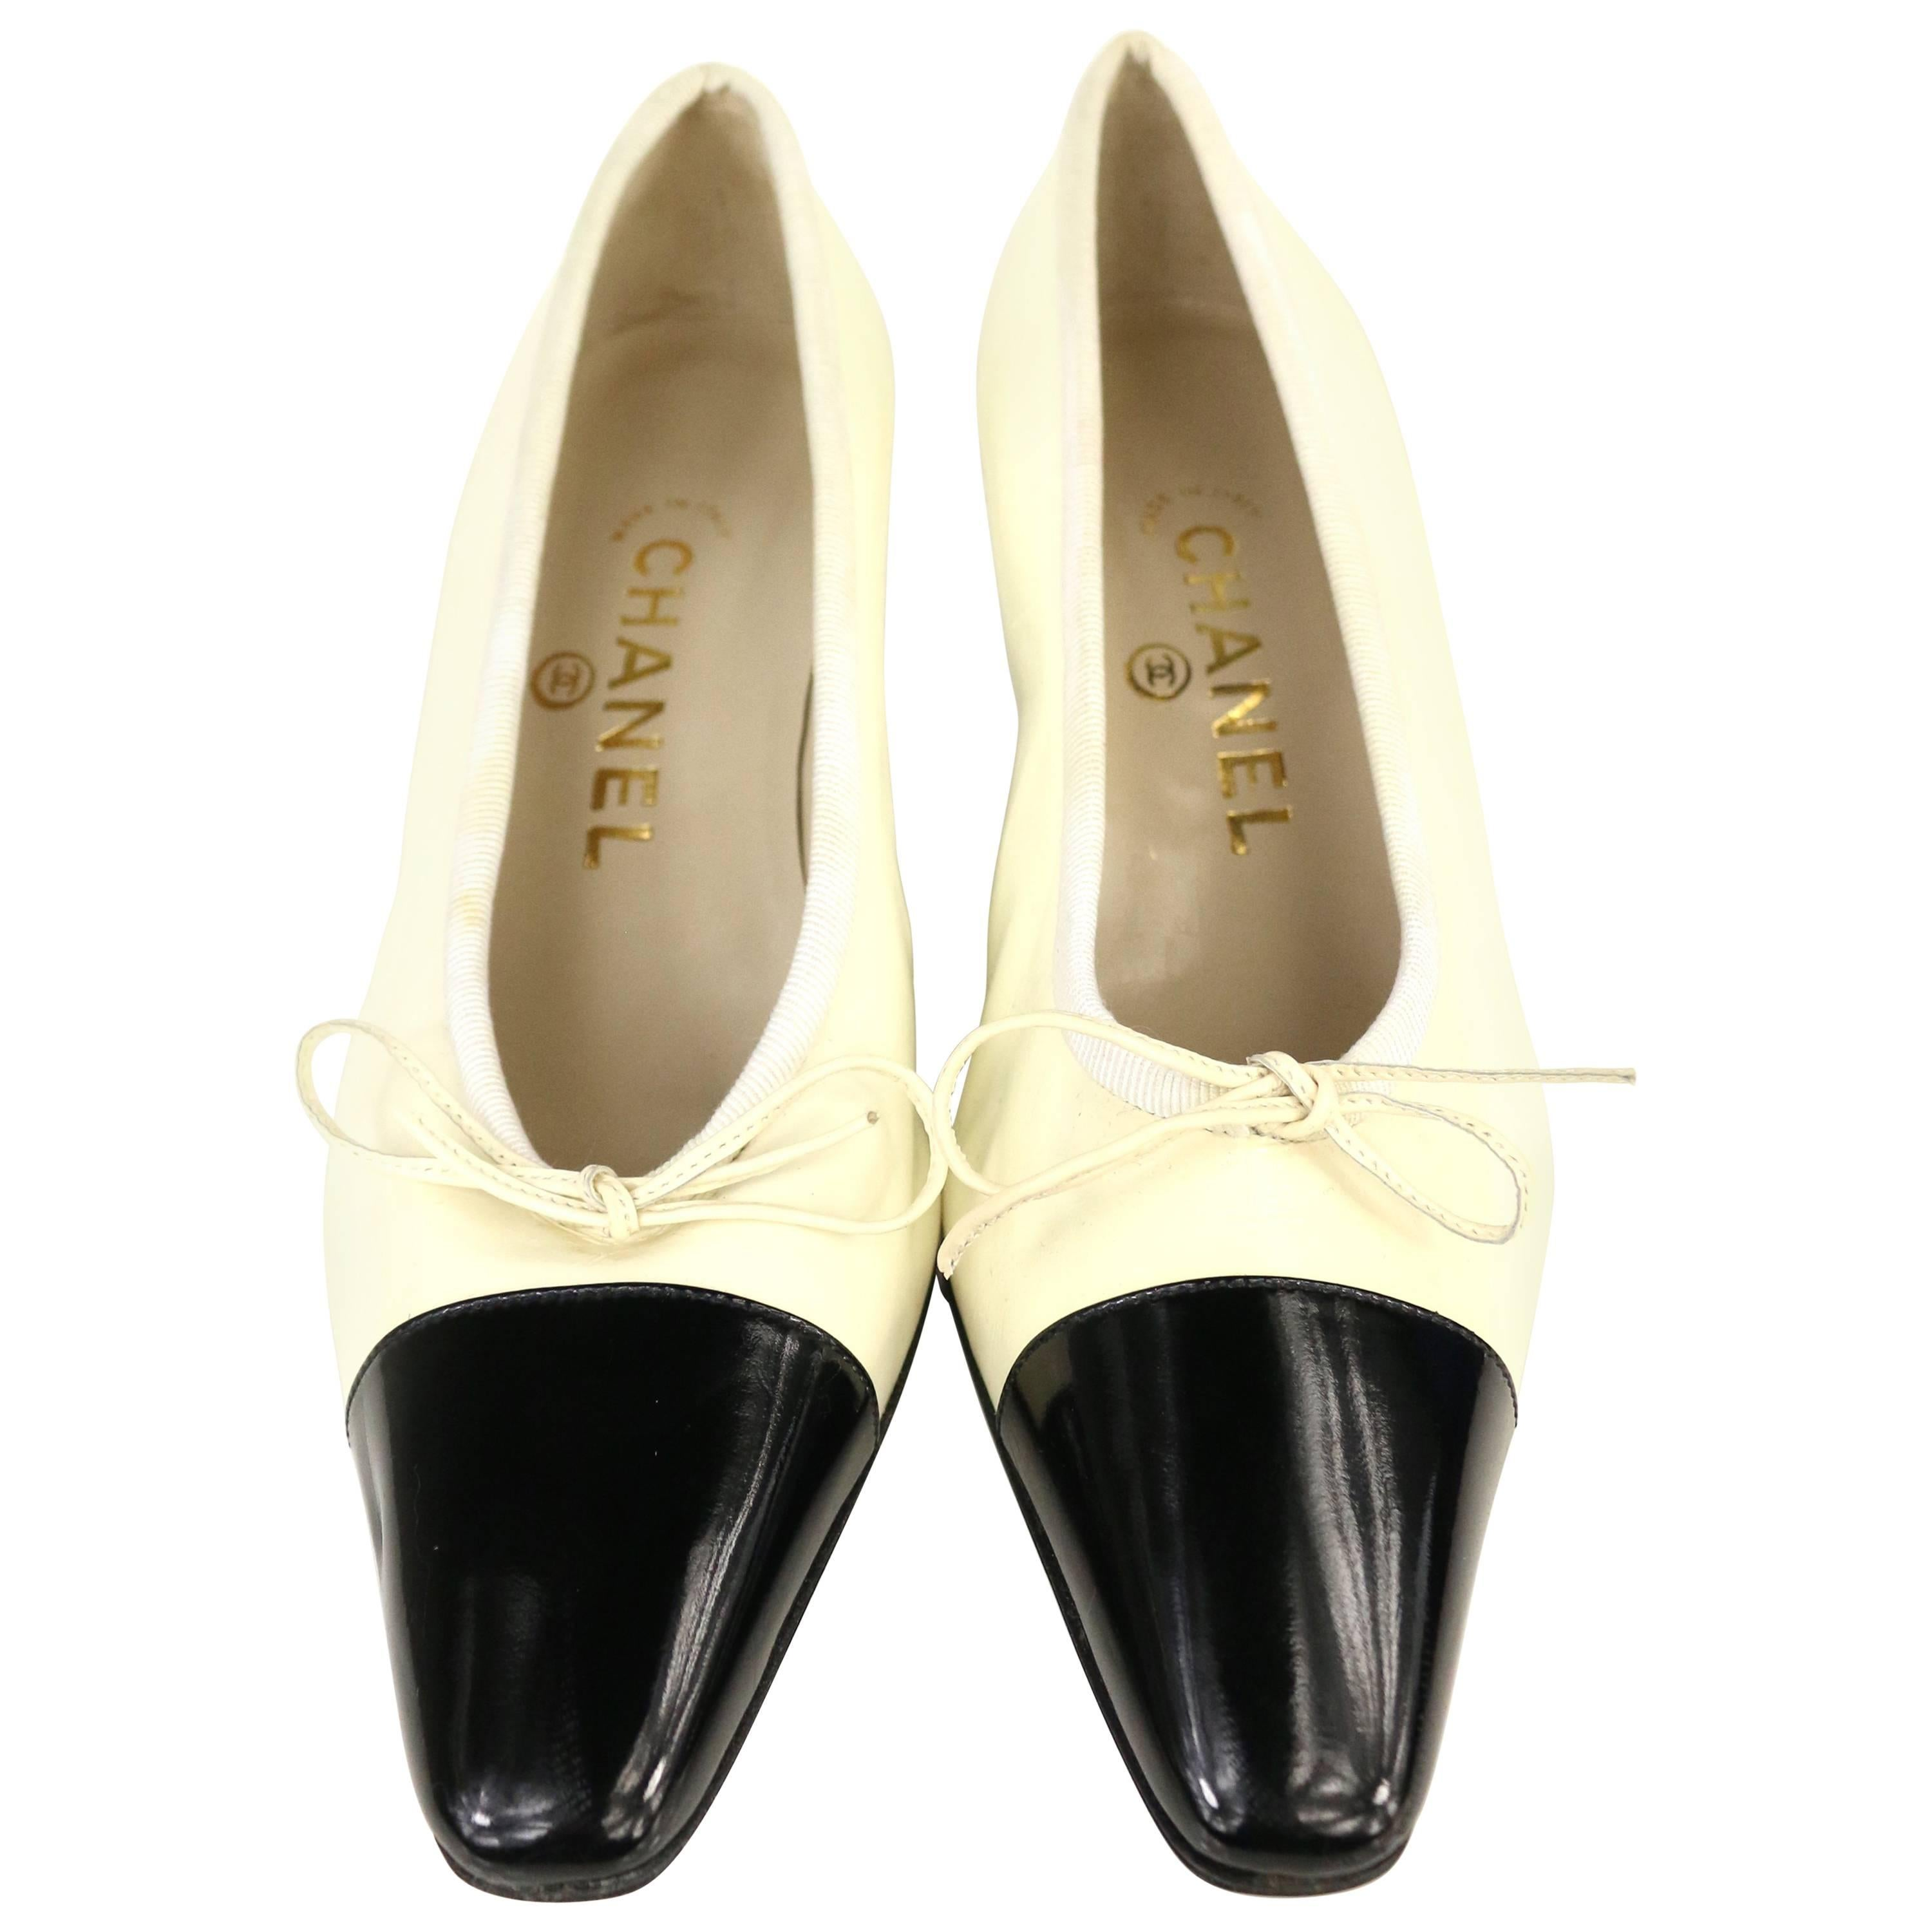 Chanel Black and White Patent Leather with Tied Ribbon Shoes